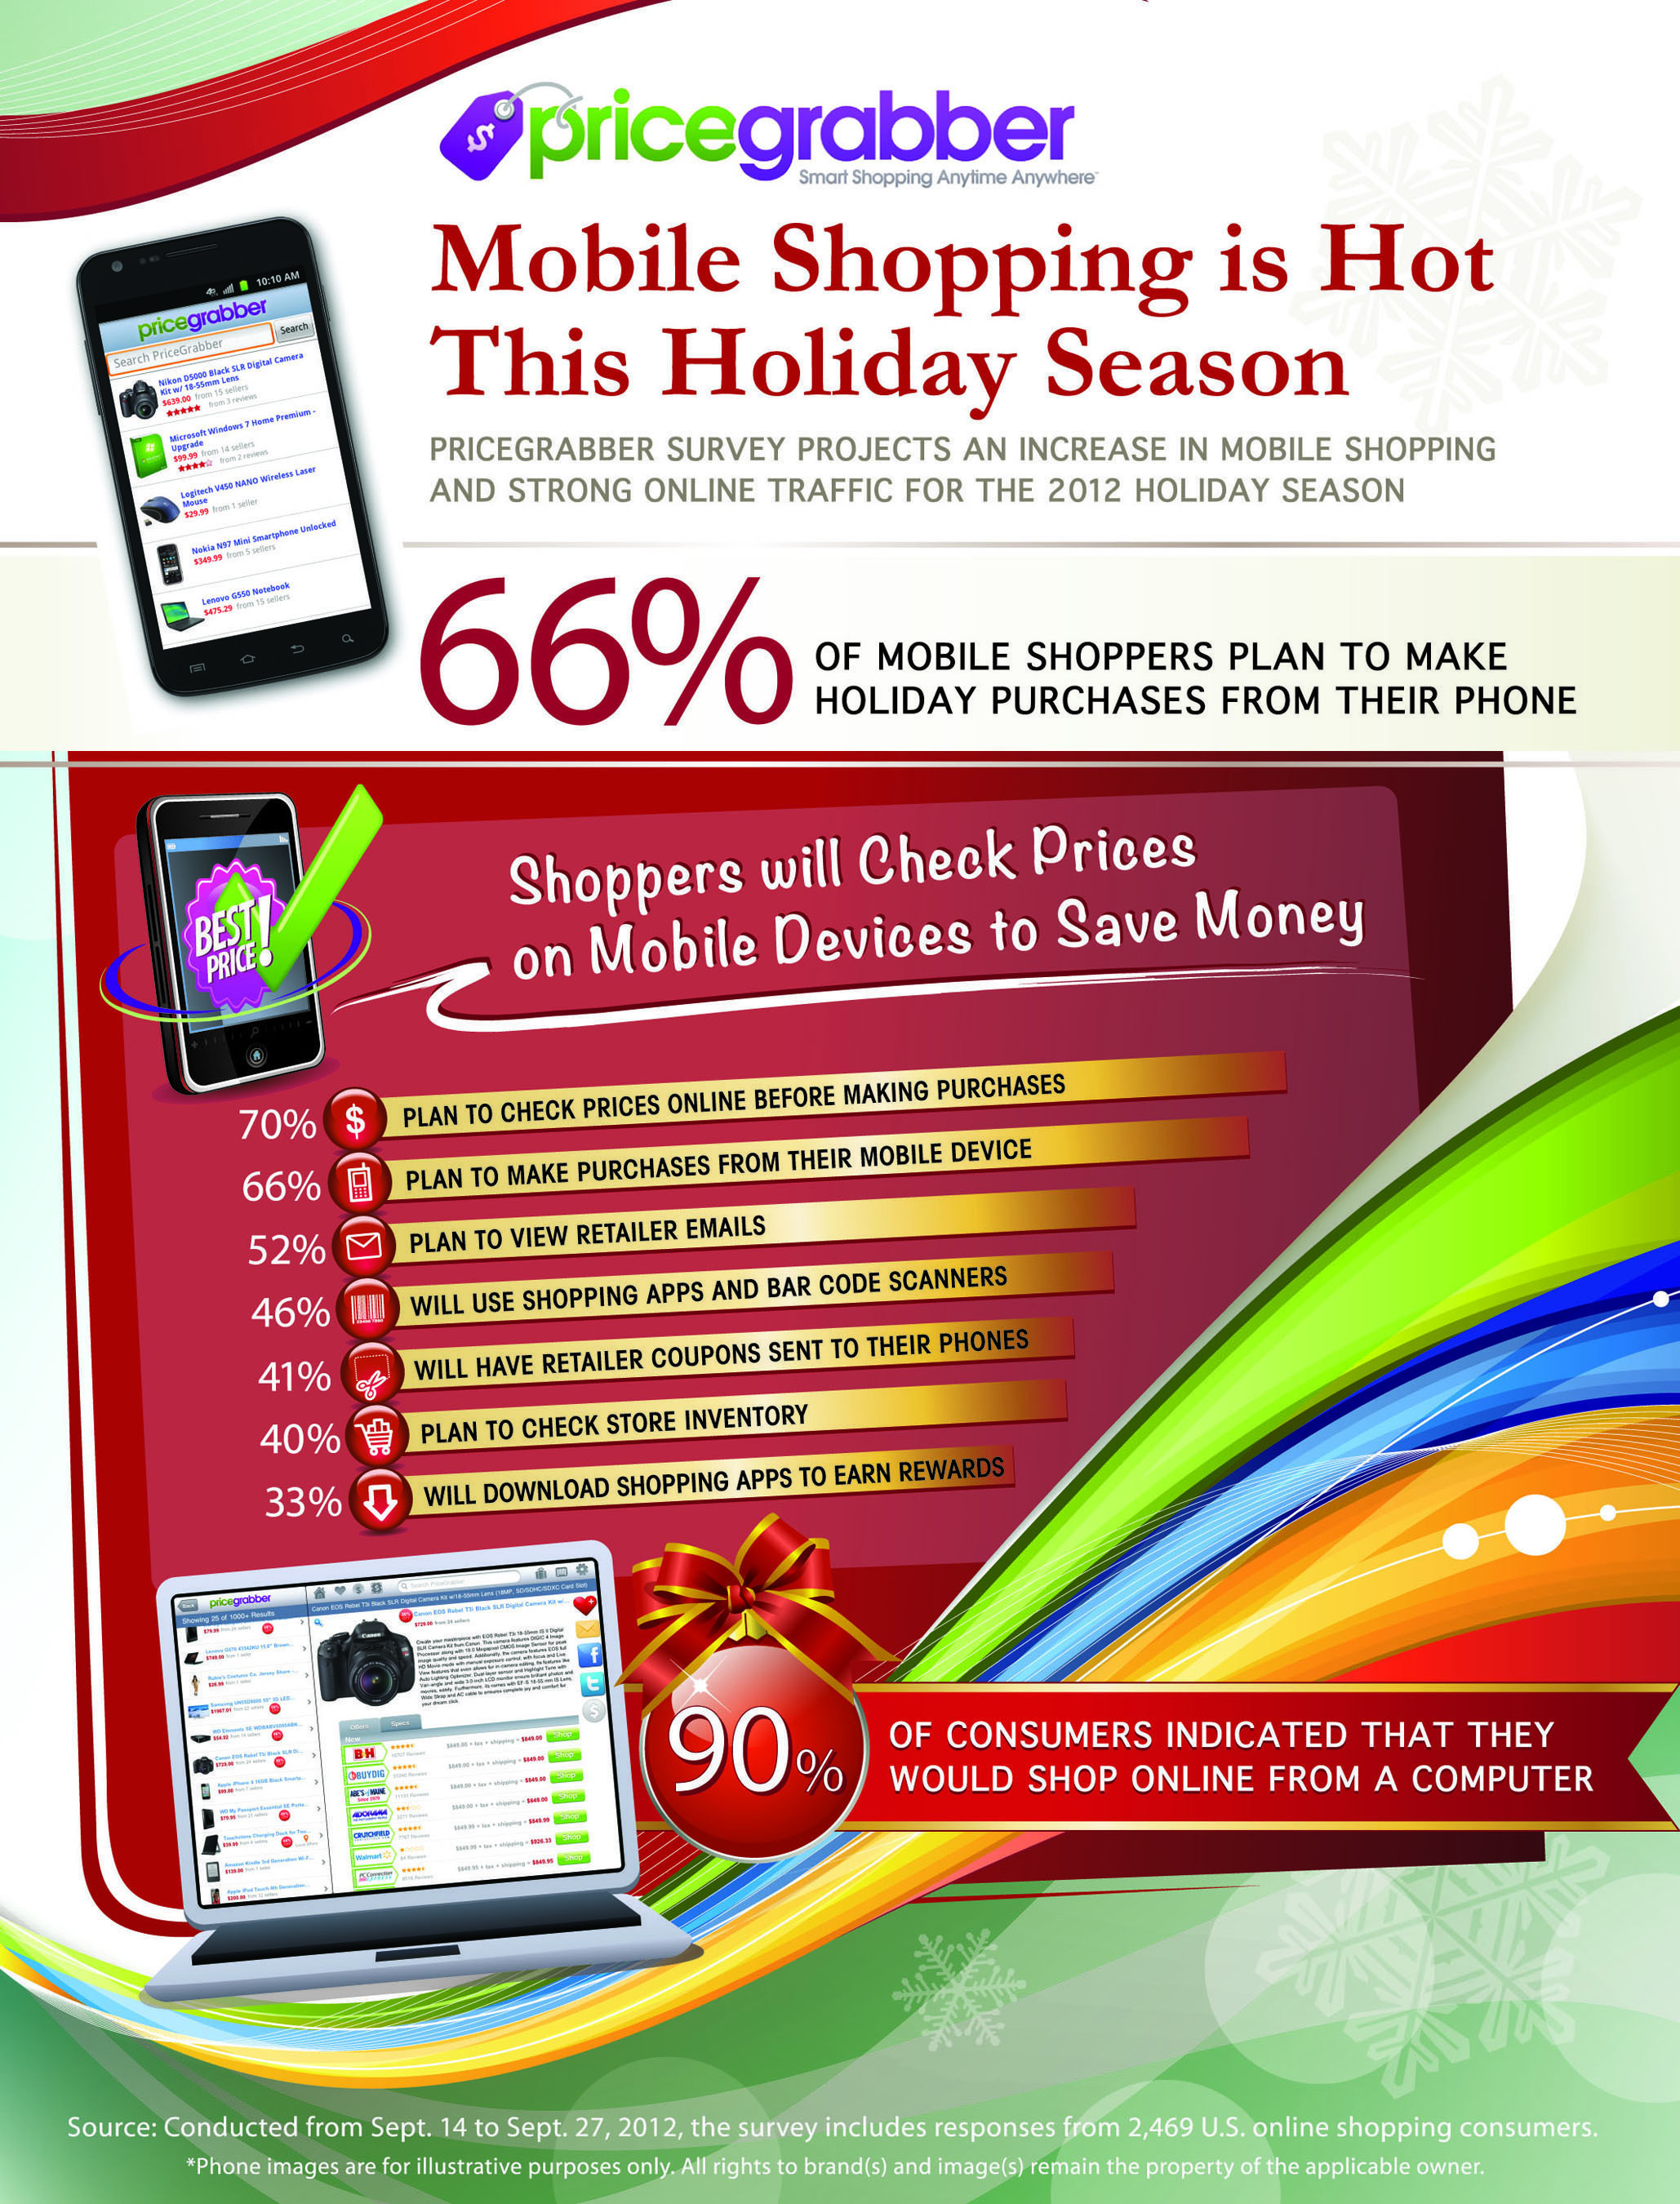 PriceGrabber® survey predicts an increase in mobile shopping and strong online traffic for the 2012